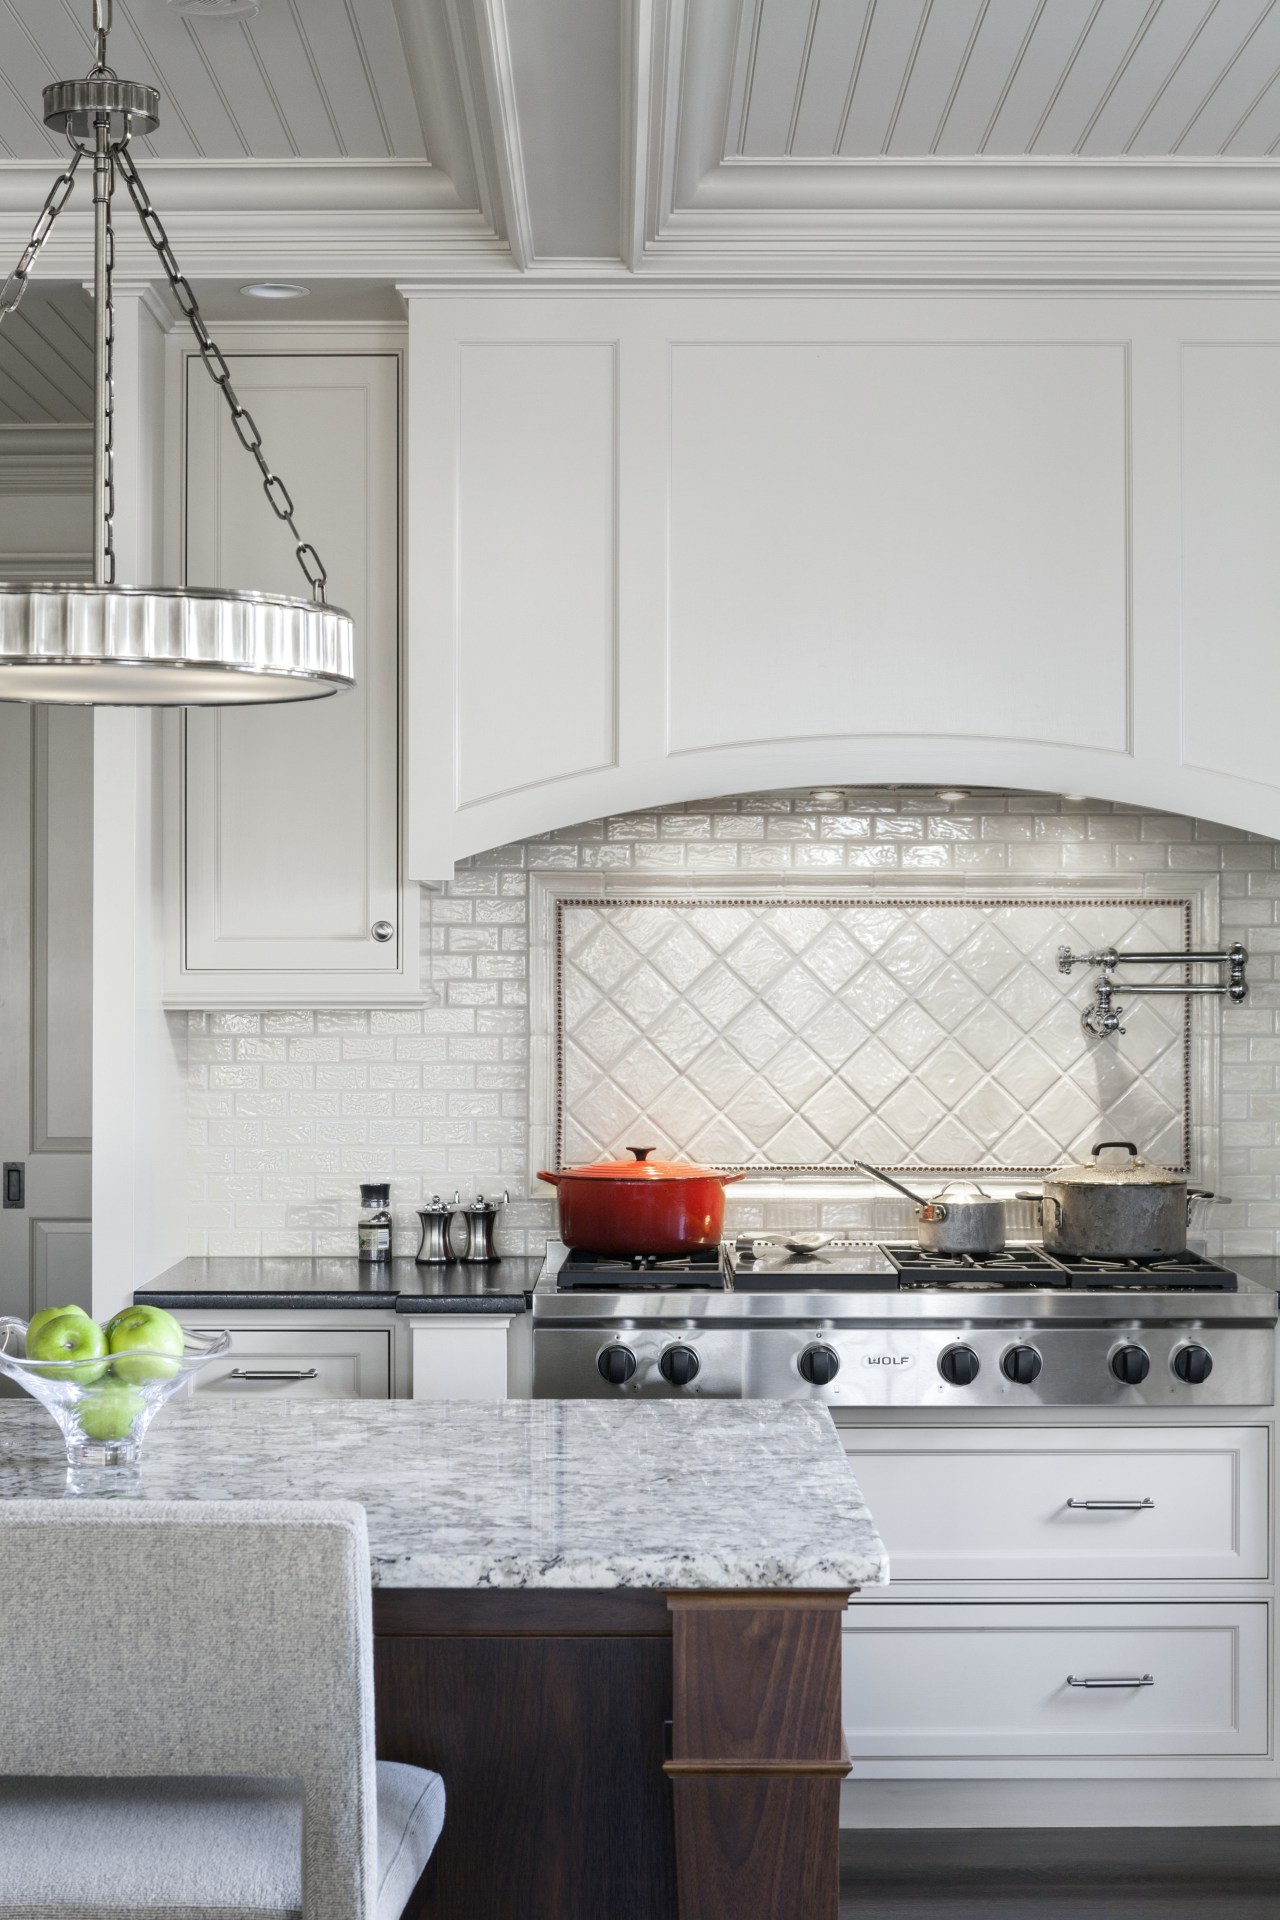 A backsplash panel in diagonally set raised pillow cabinetry, countertop, cuisine classique, floor, home, interior design, kitchen, room, window, gray